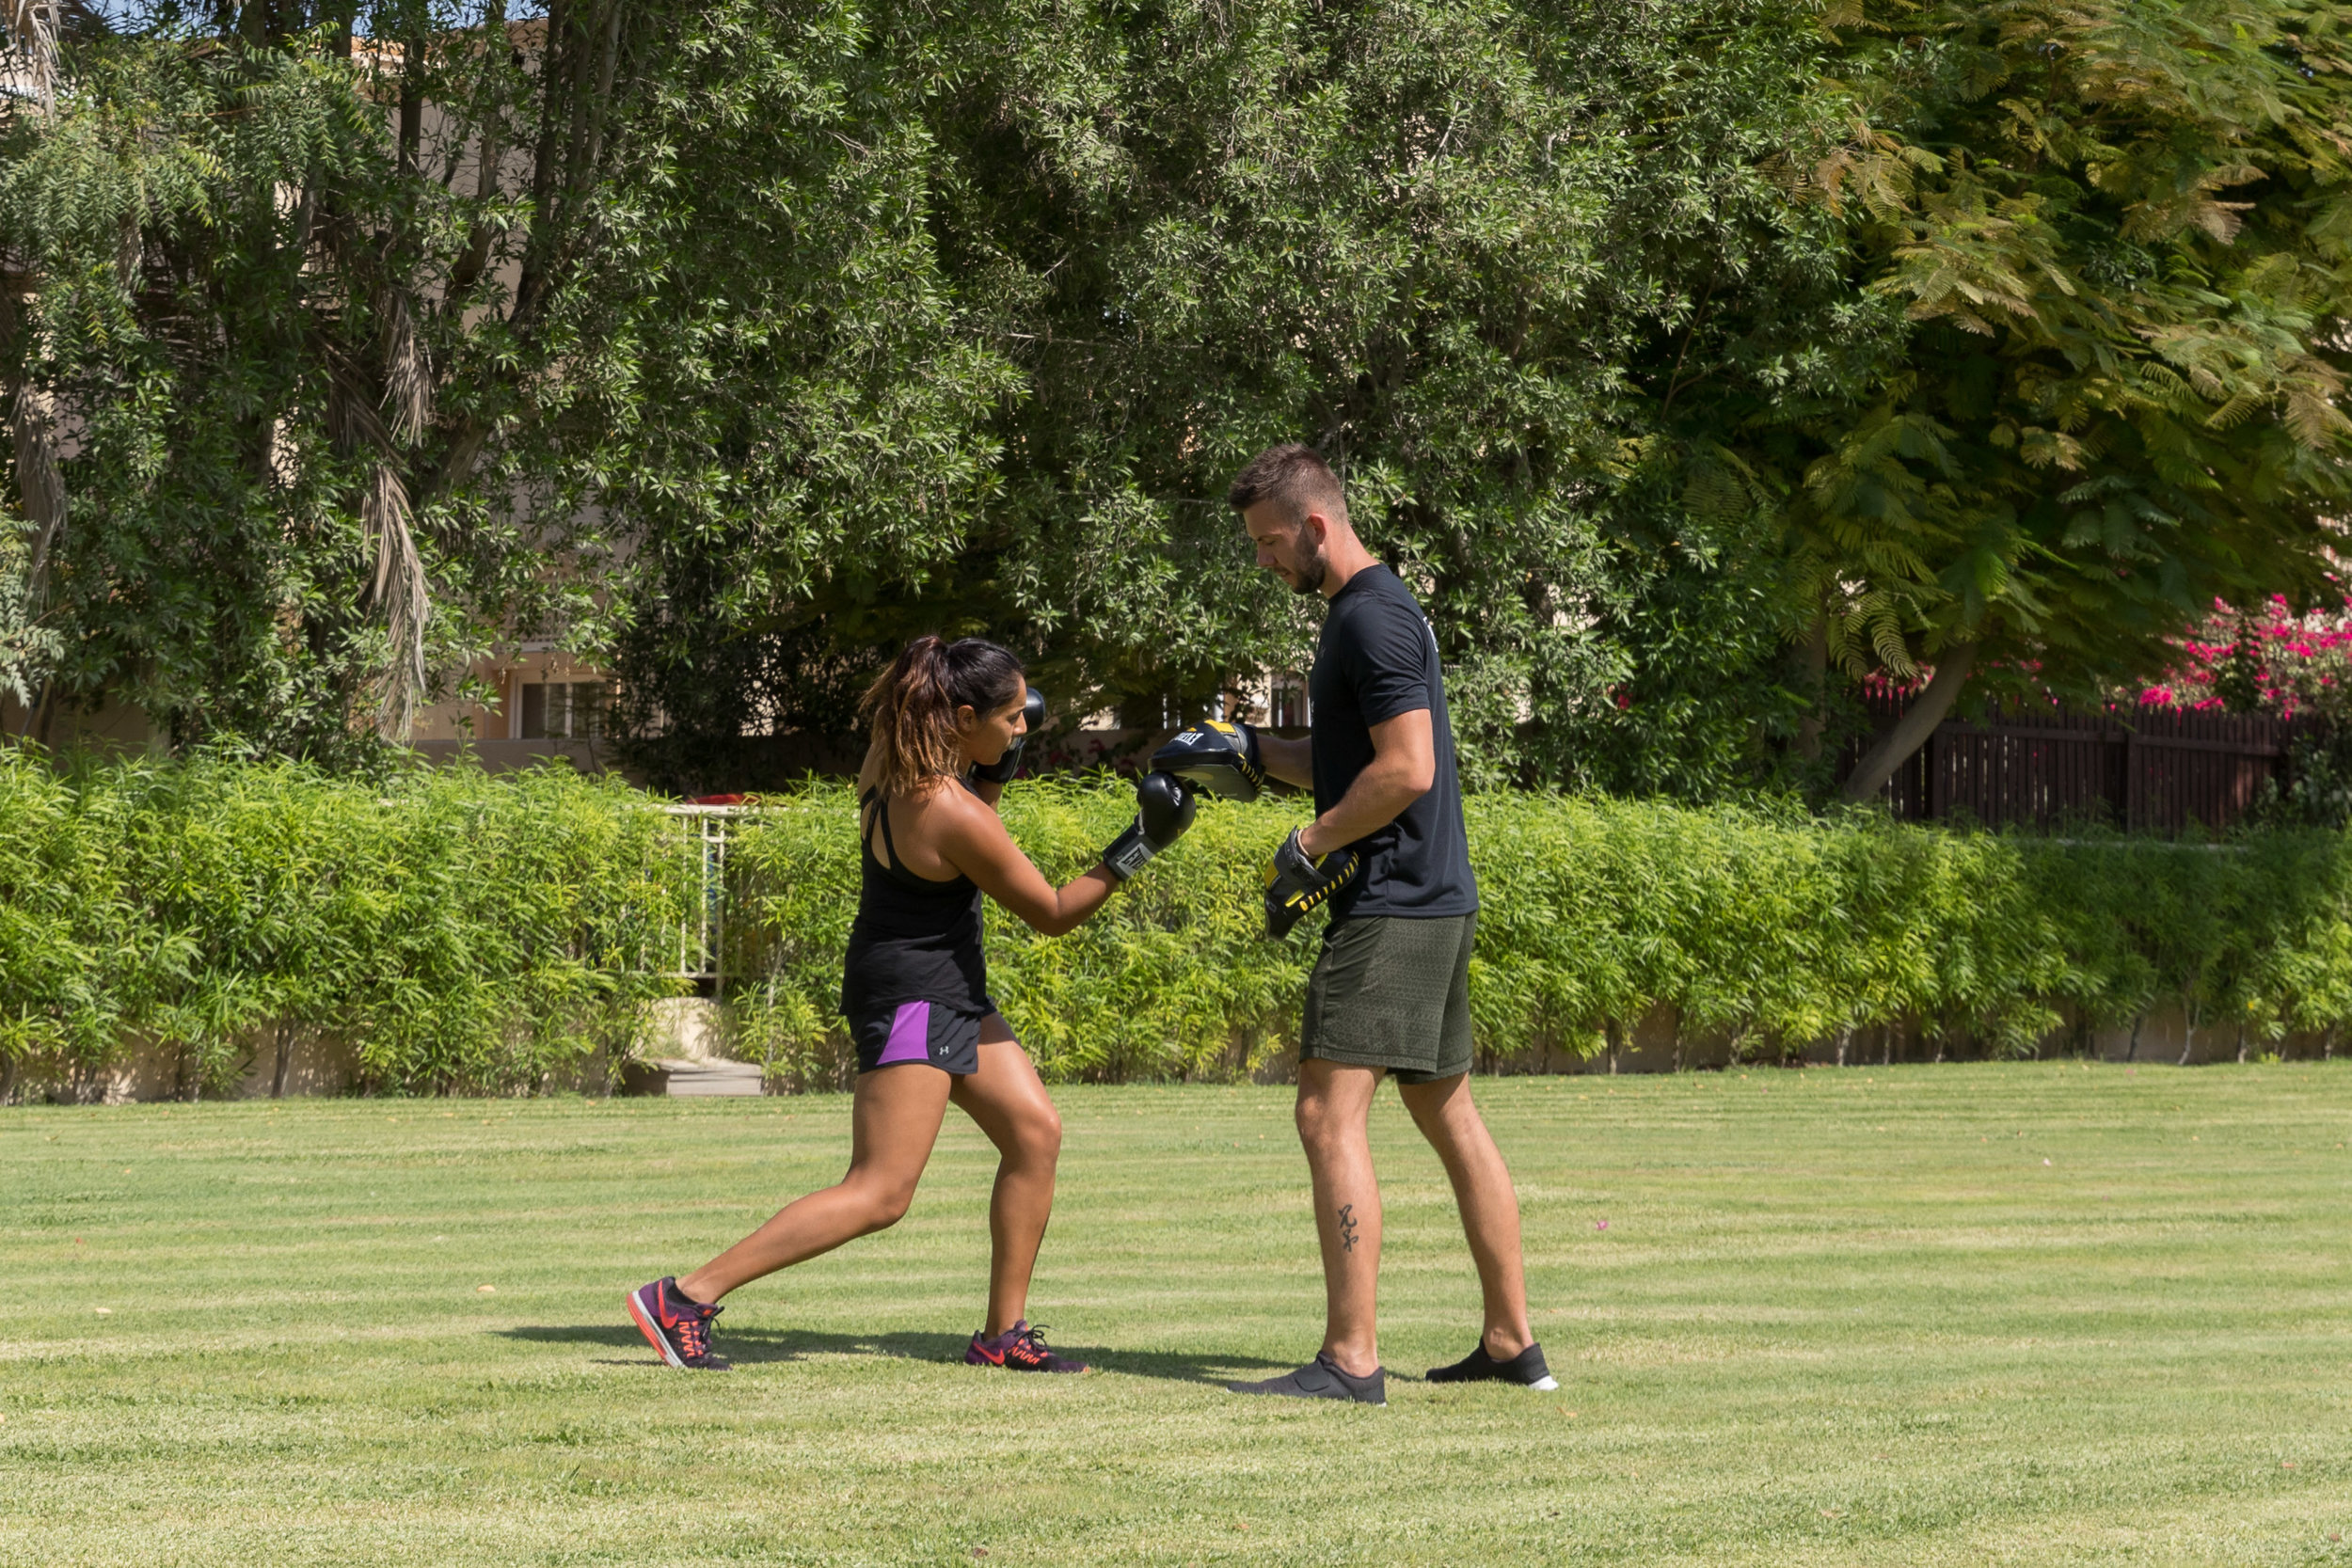 personal-boxing-training-in-dubai-with-fitsquaddxb.jpg